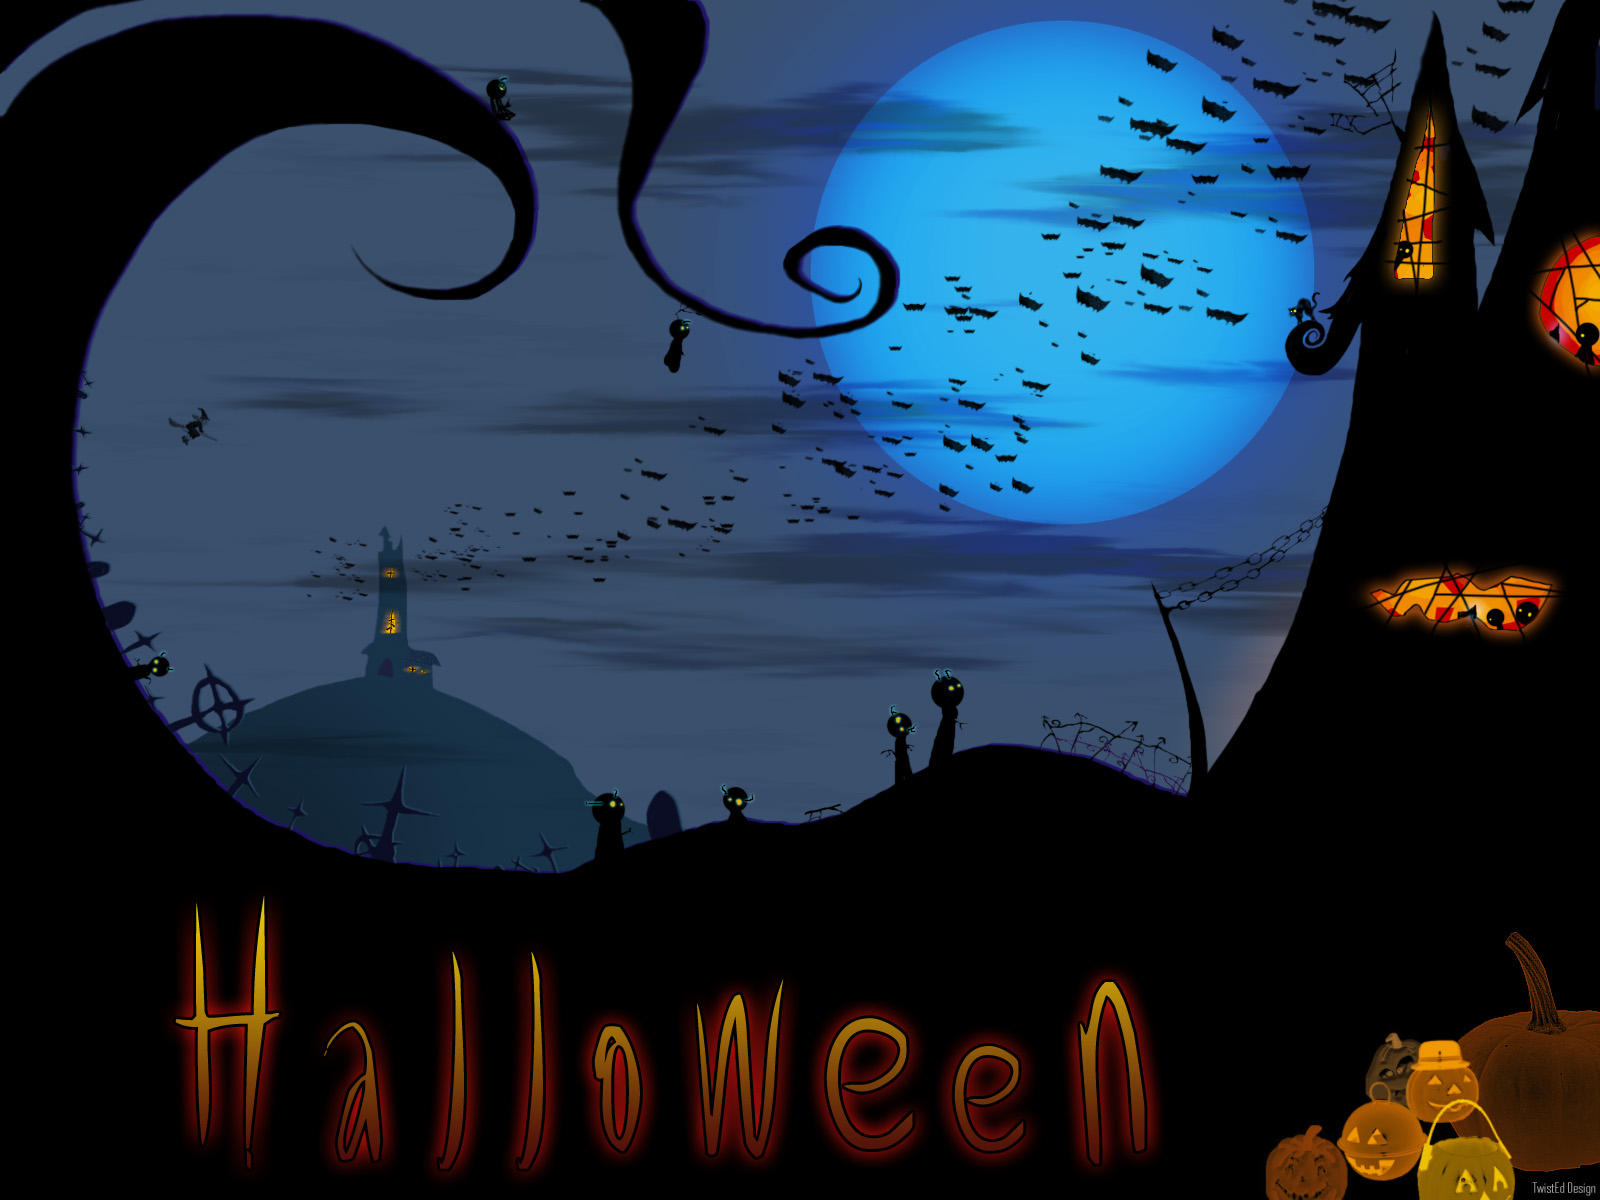 Halloween wp by twisted ky0 on deviantart - Imagenes de halloween ...